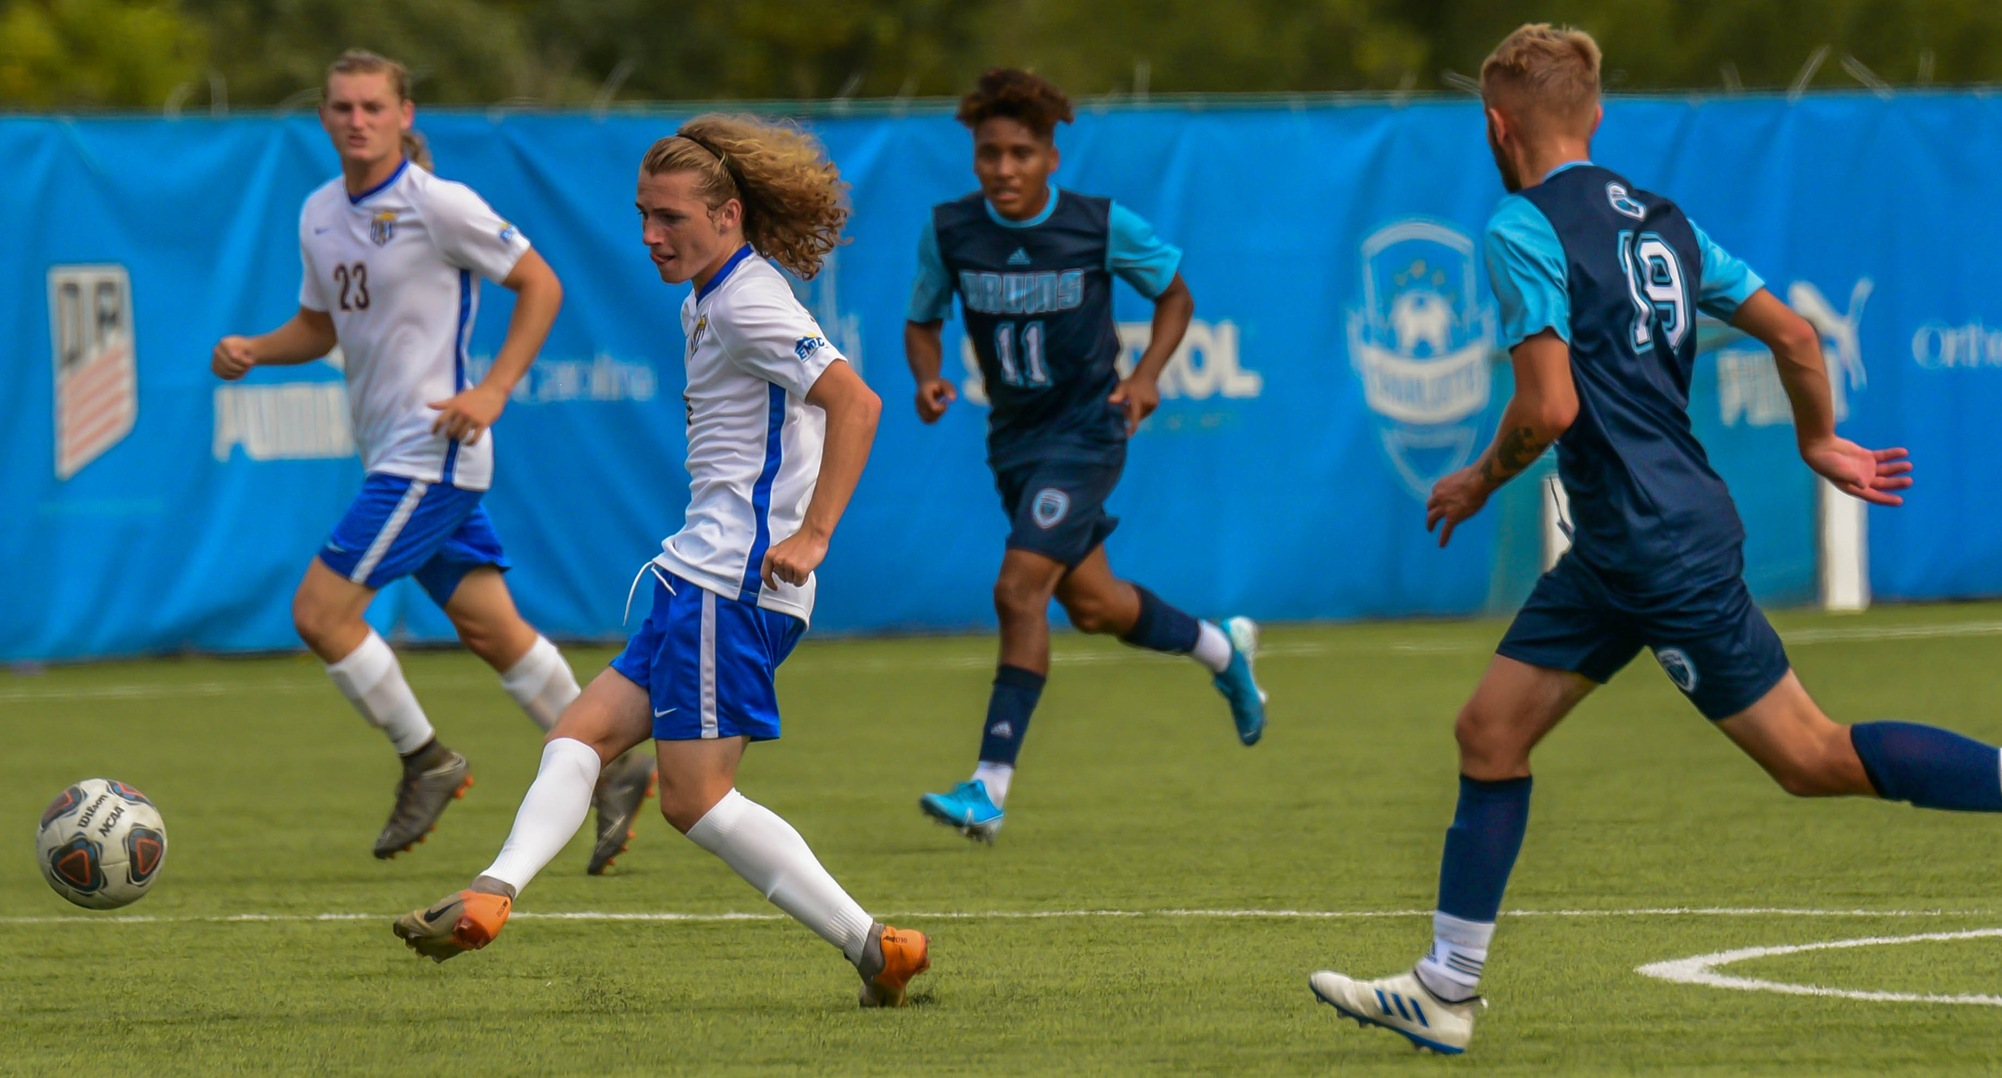 Men's Soccer Wraps Up Regular Season With Road Win